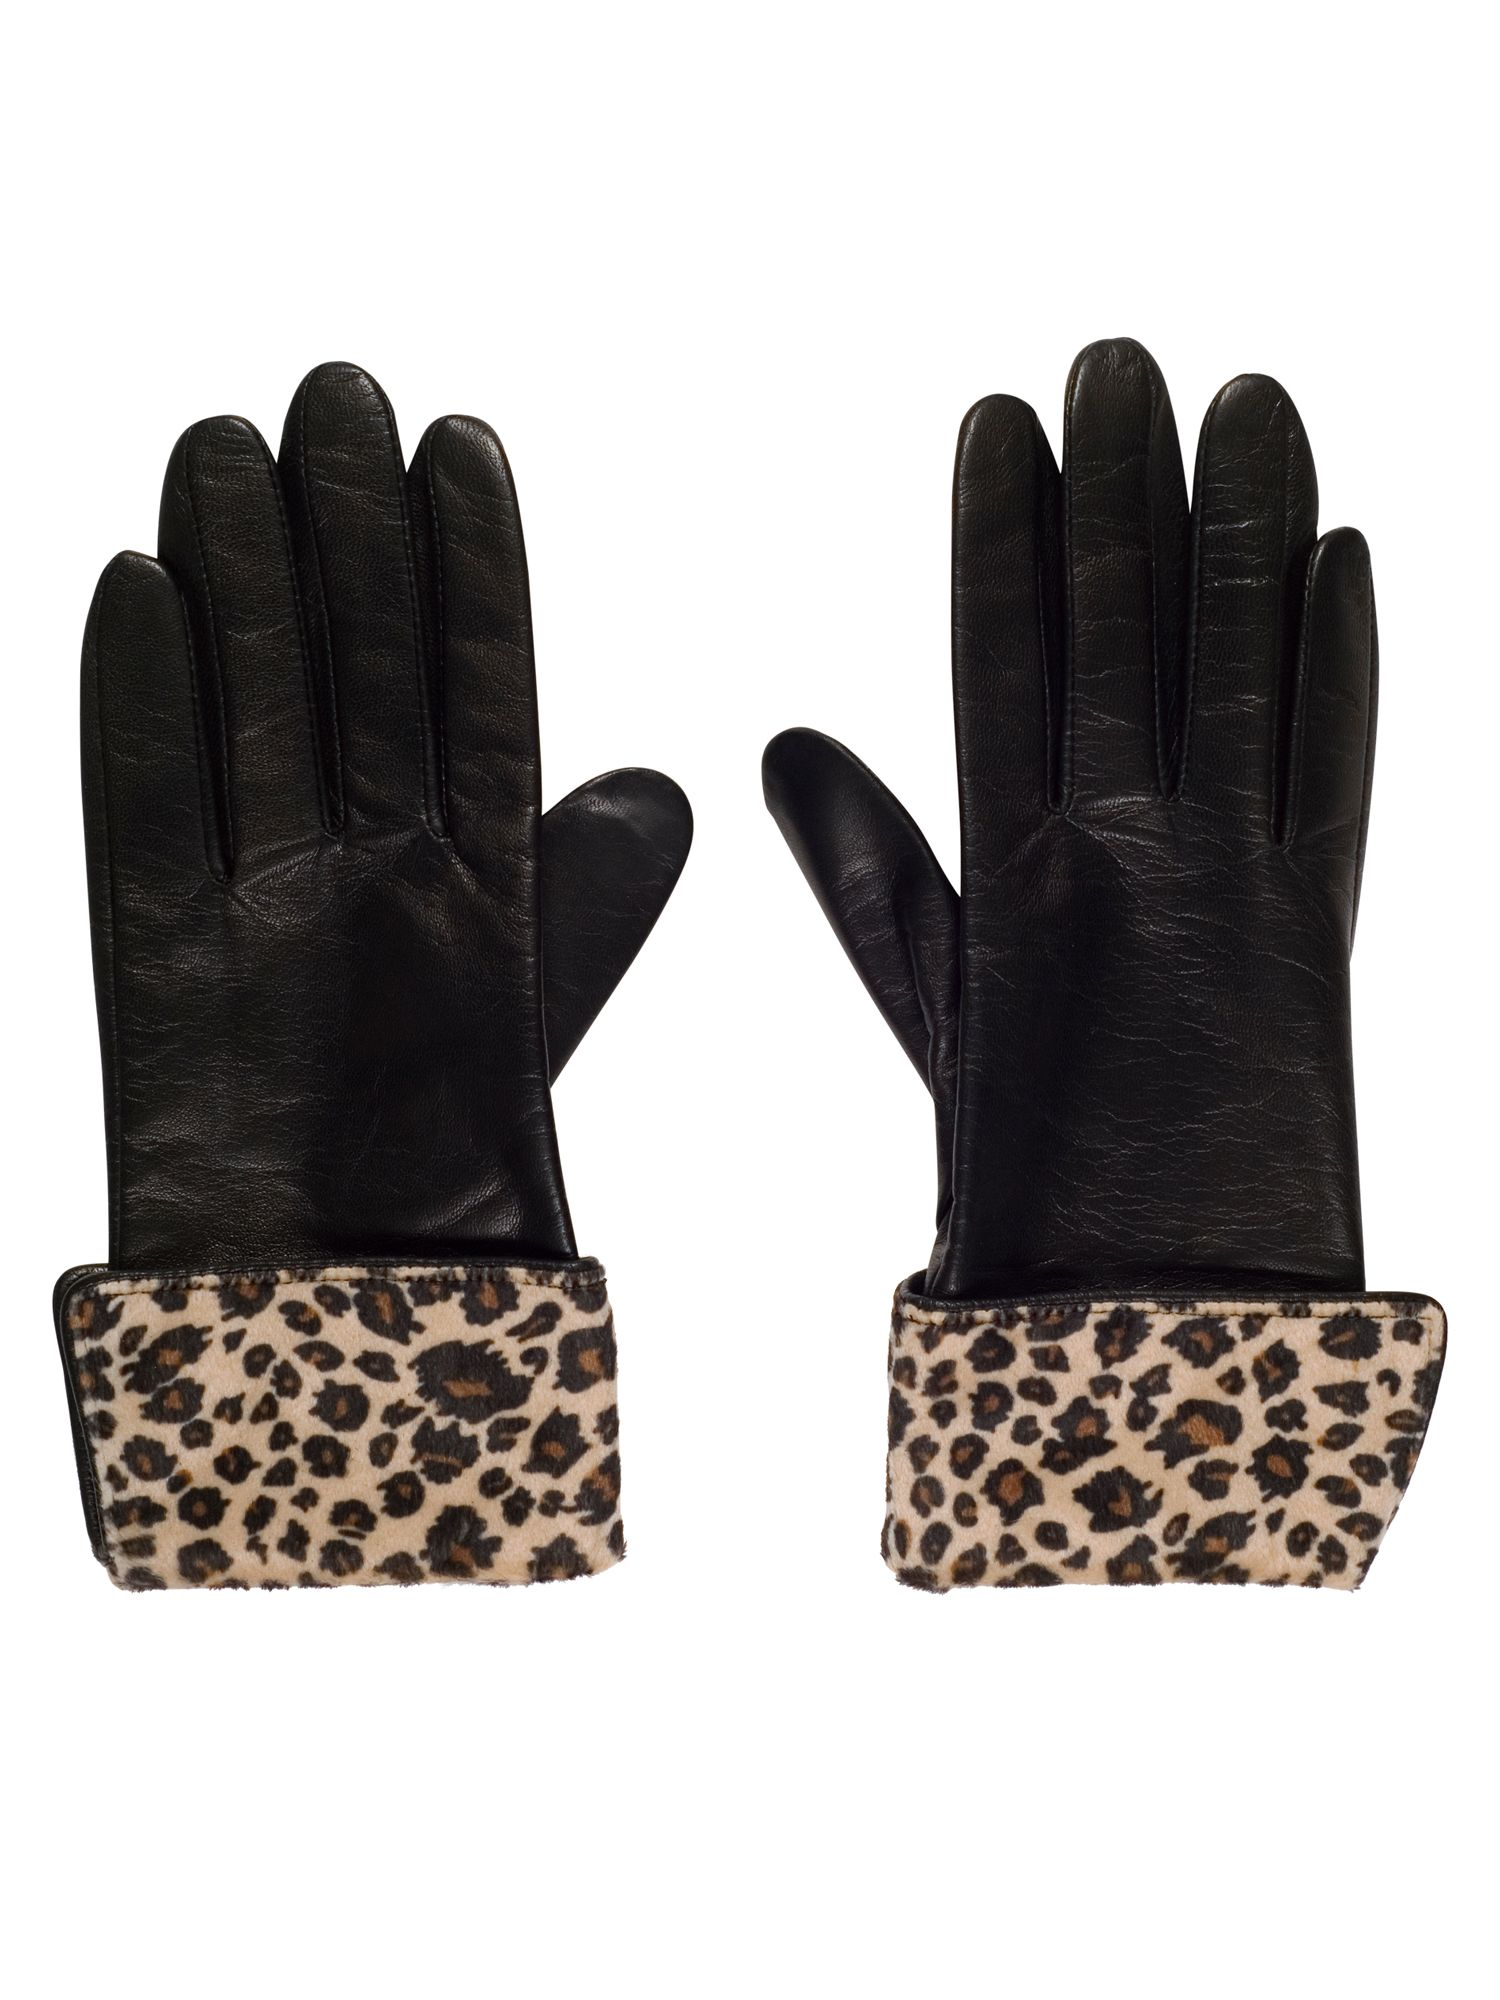 Vintage Style Gloves Chesca Leather Glove with Leopard Cuff S Black £69.00 AT vintagedancer.com